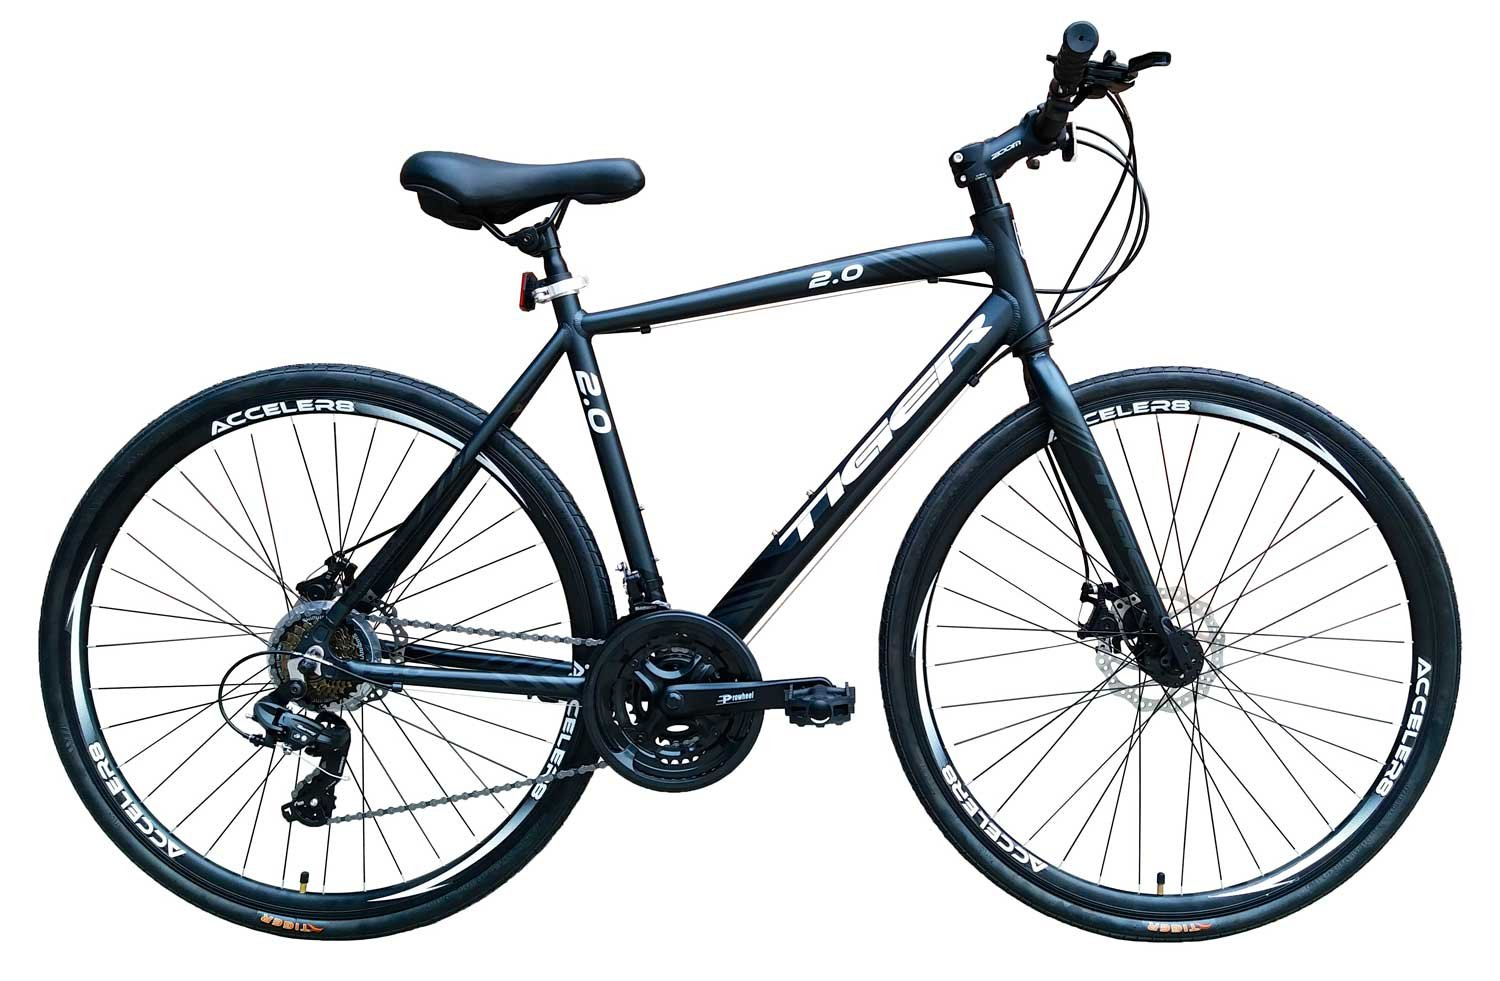 71A9Qnuab7L - Tiger Legend 2.0 Alloy Sports Hybrid Bike